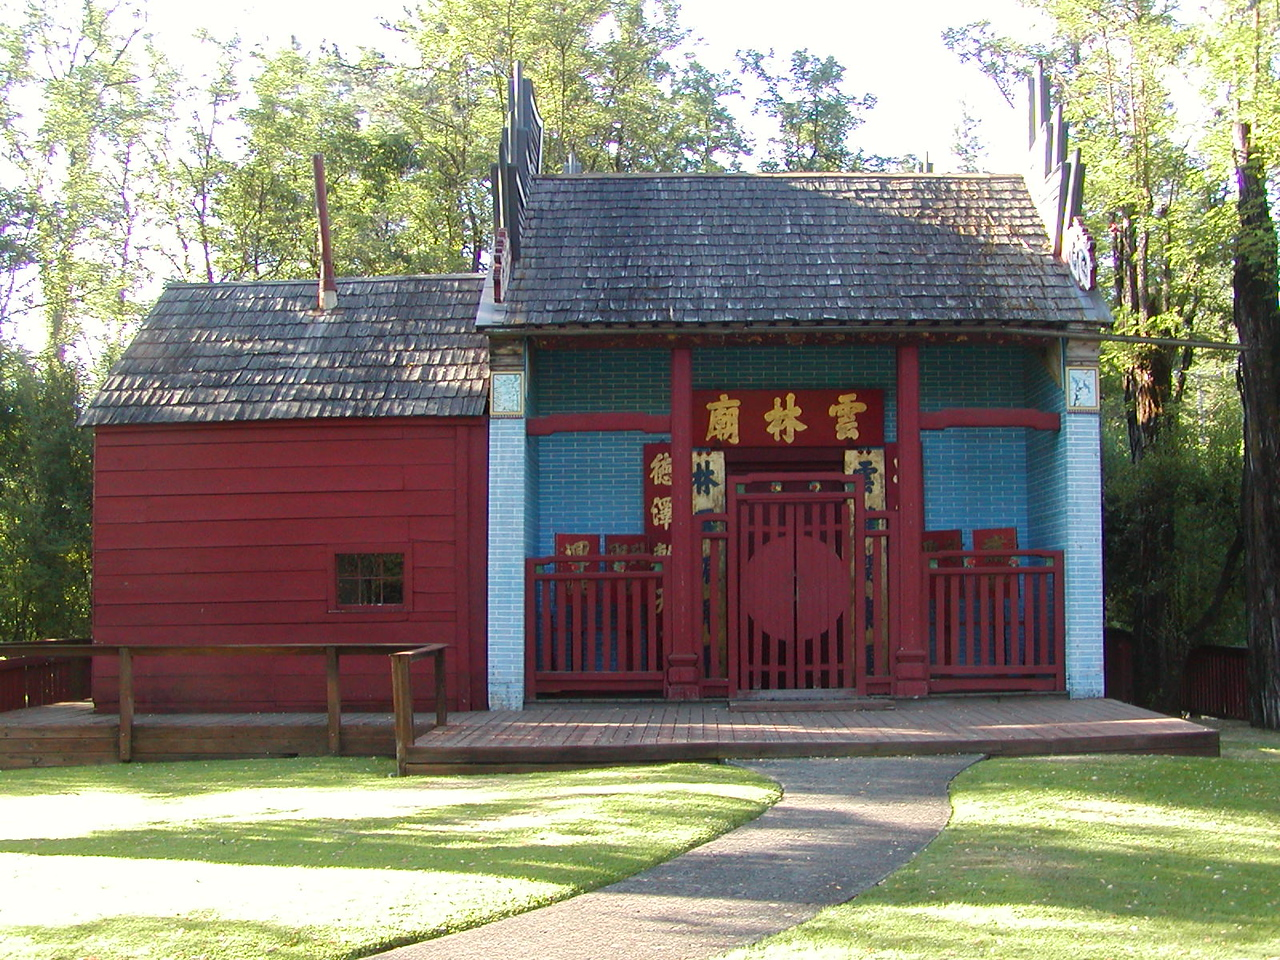 Joss House: Oldest continuously used Buddhist Temple in California